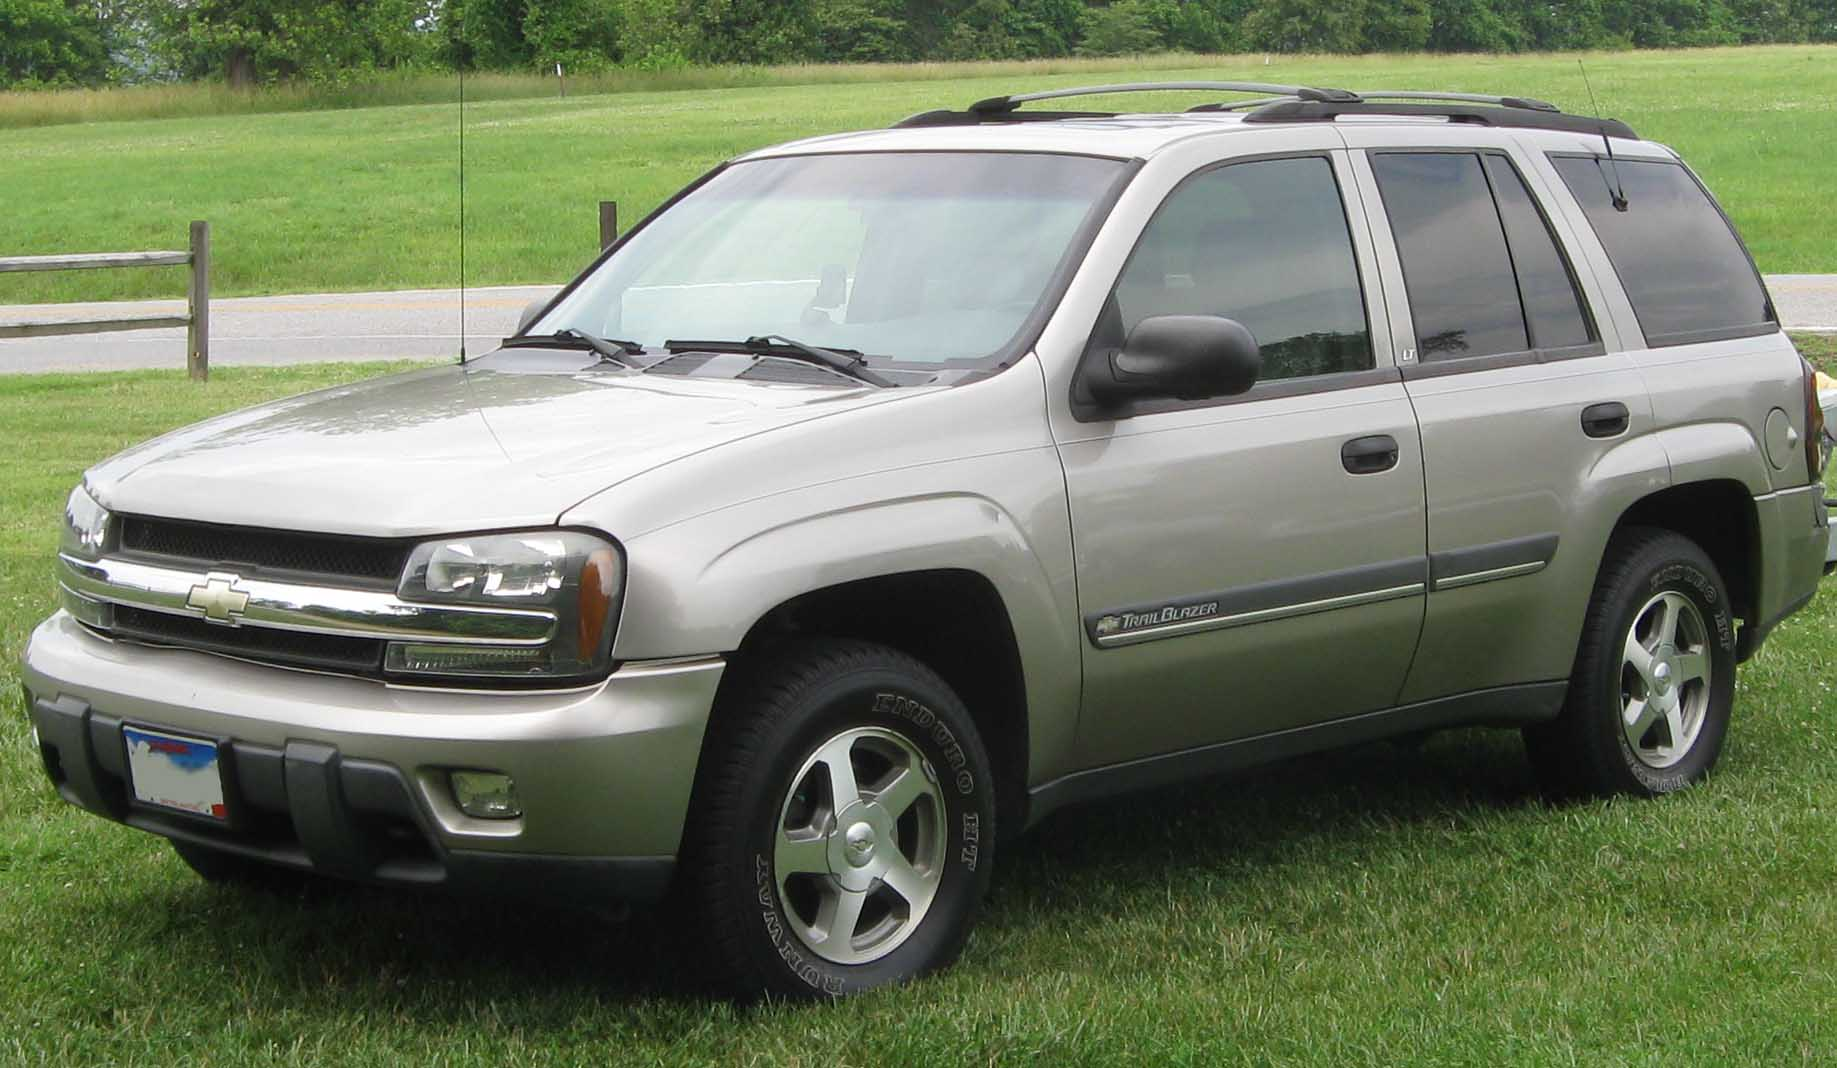 2004 Trailblazer Fan Clutch Wiring Diagram 2003 4 2 Engine Archive Of Automotive Chevrolet Wikipedia Rh En Org